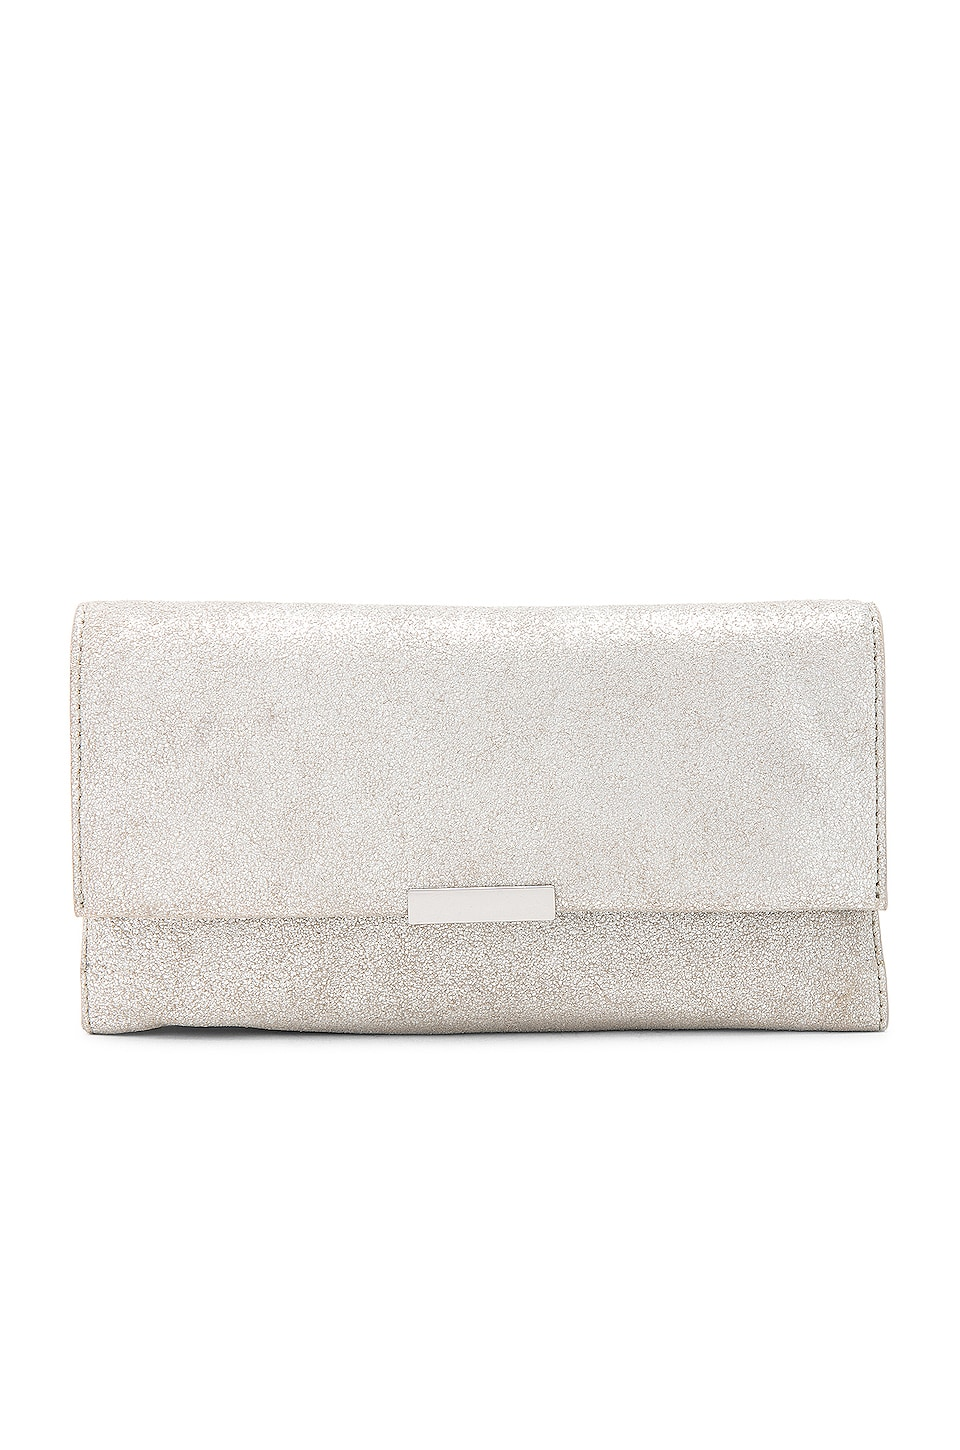 Loeffler Randall Tab Clutch in Sugar